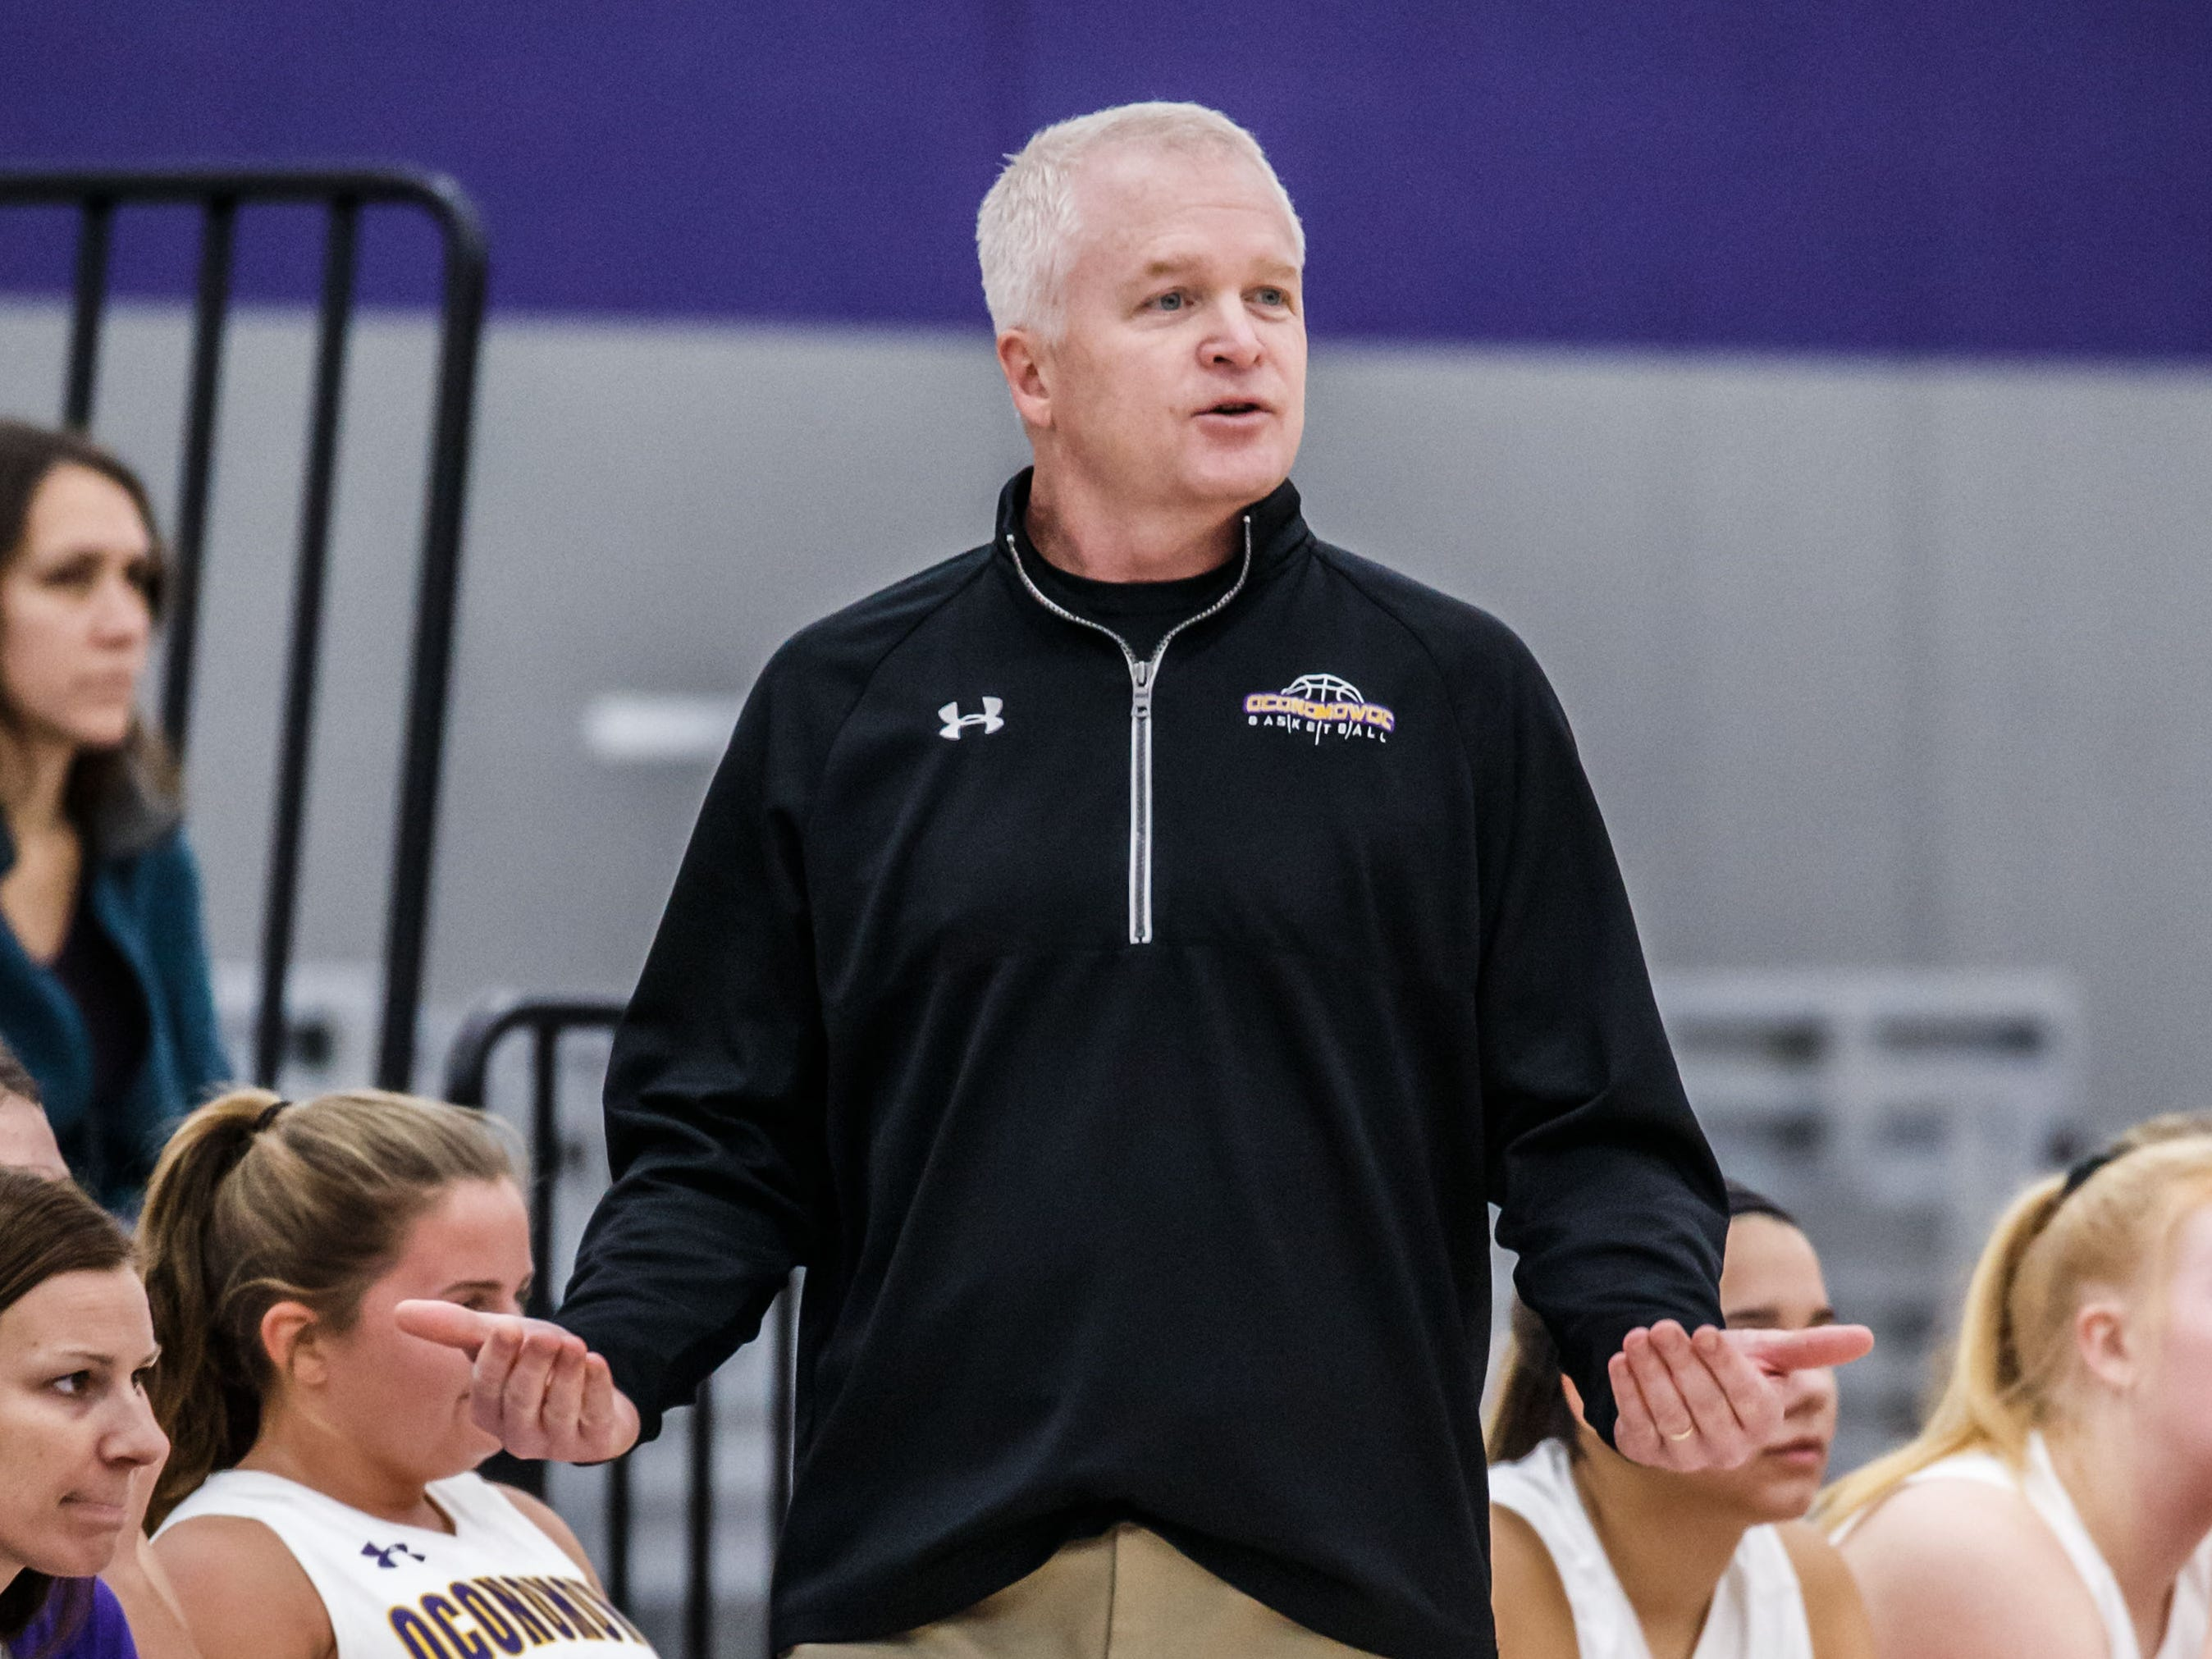 Oconomowoc head coach Bob Shea reacts to a call during the game at home against Franklin on Monday, Nov. 19, 2018.